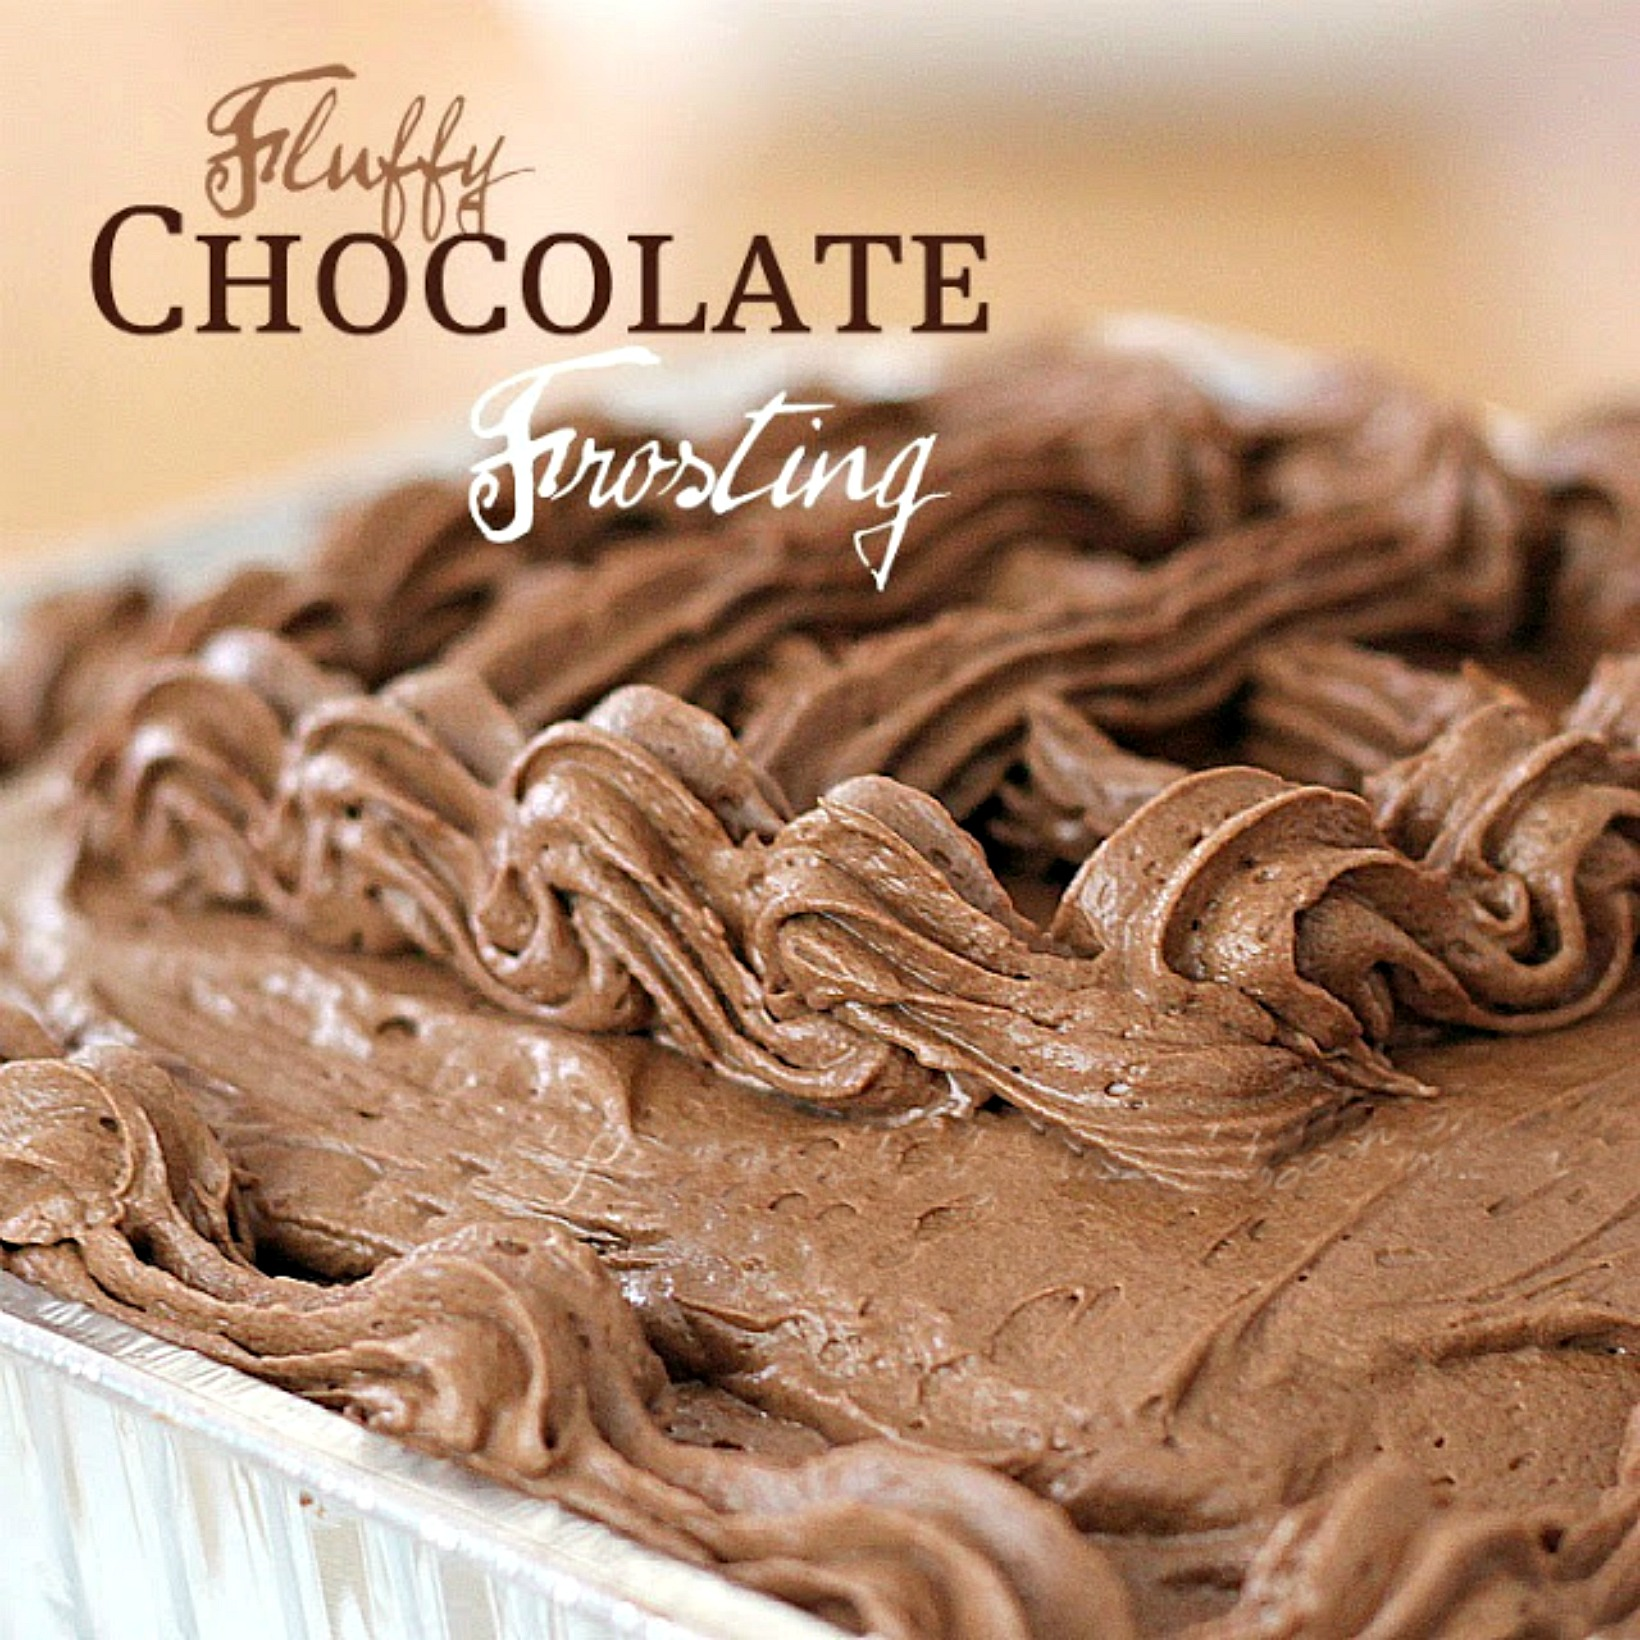 Easy recipe for Fluffy Chocolate frosting for cakes and cupcakes